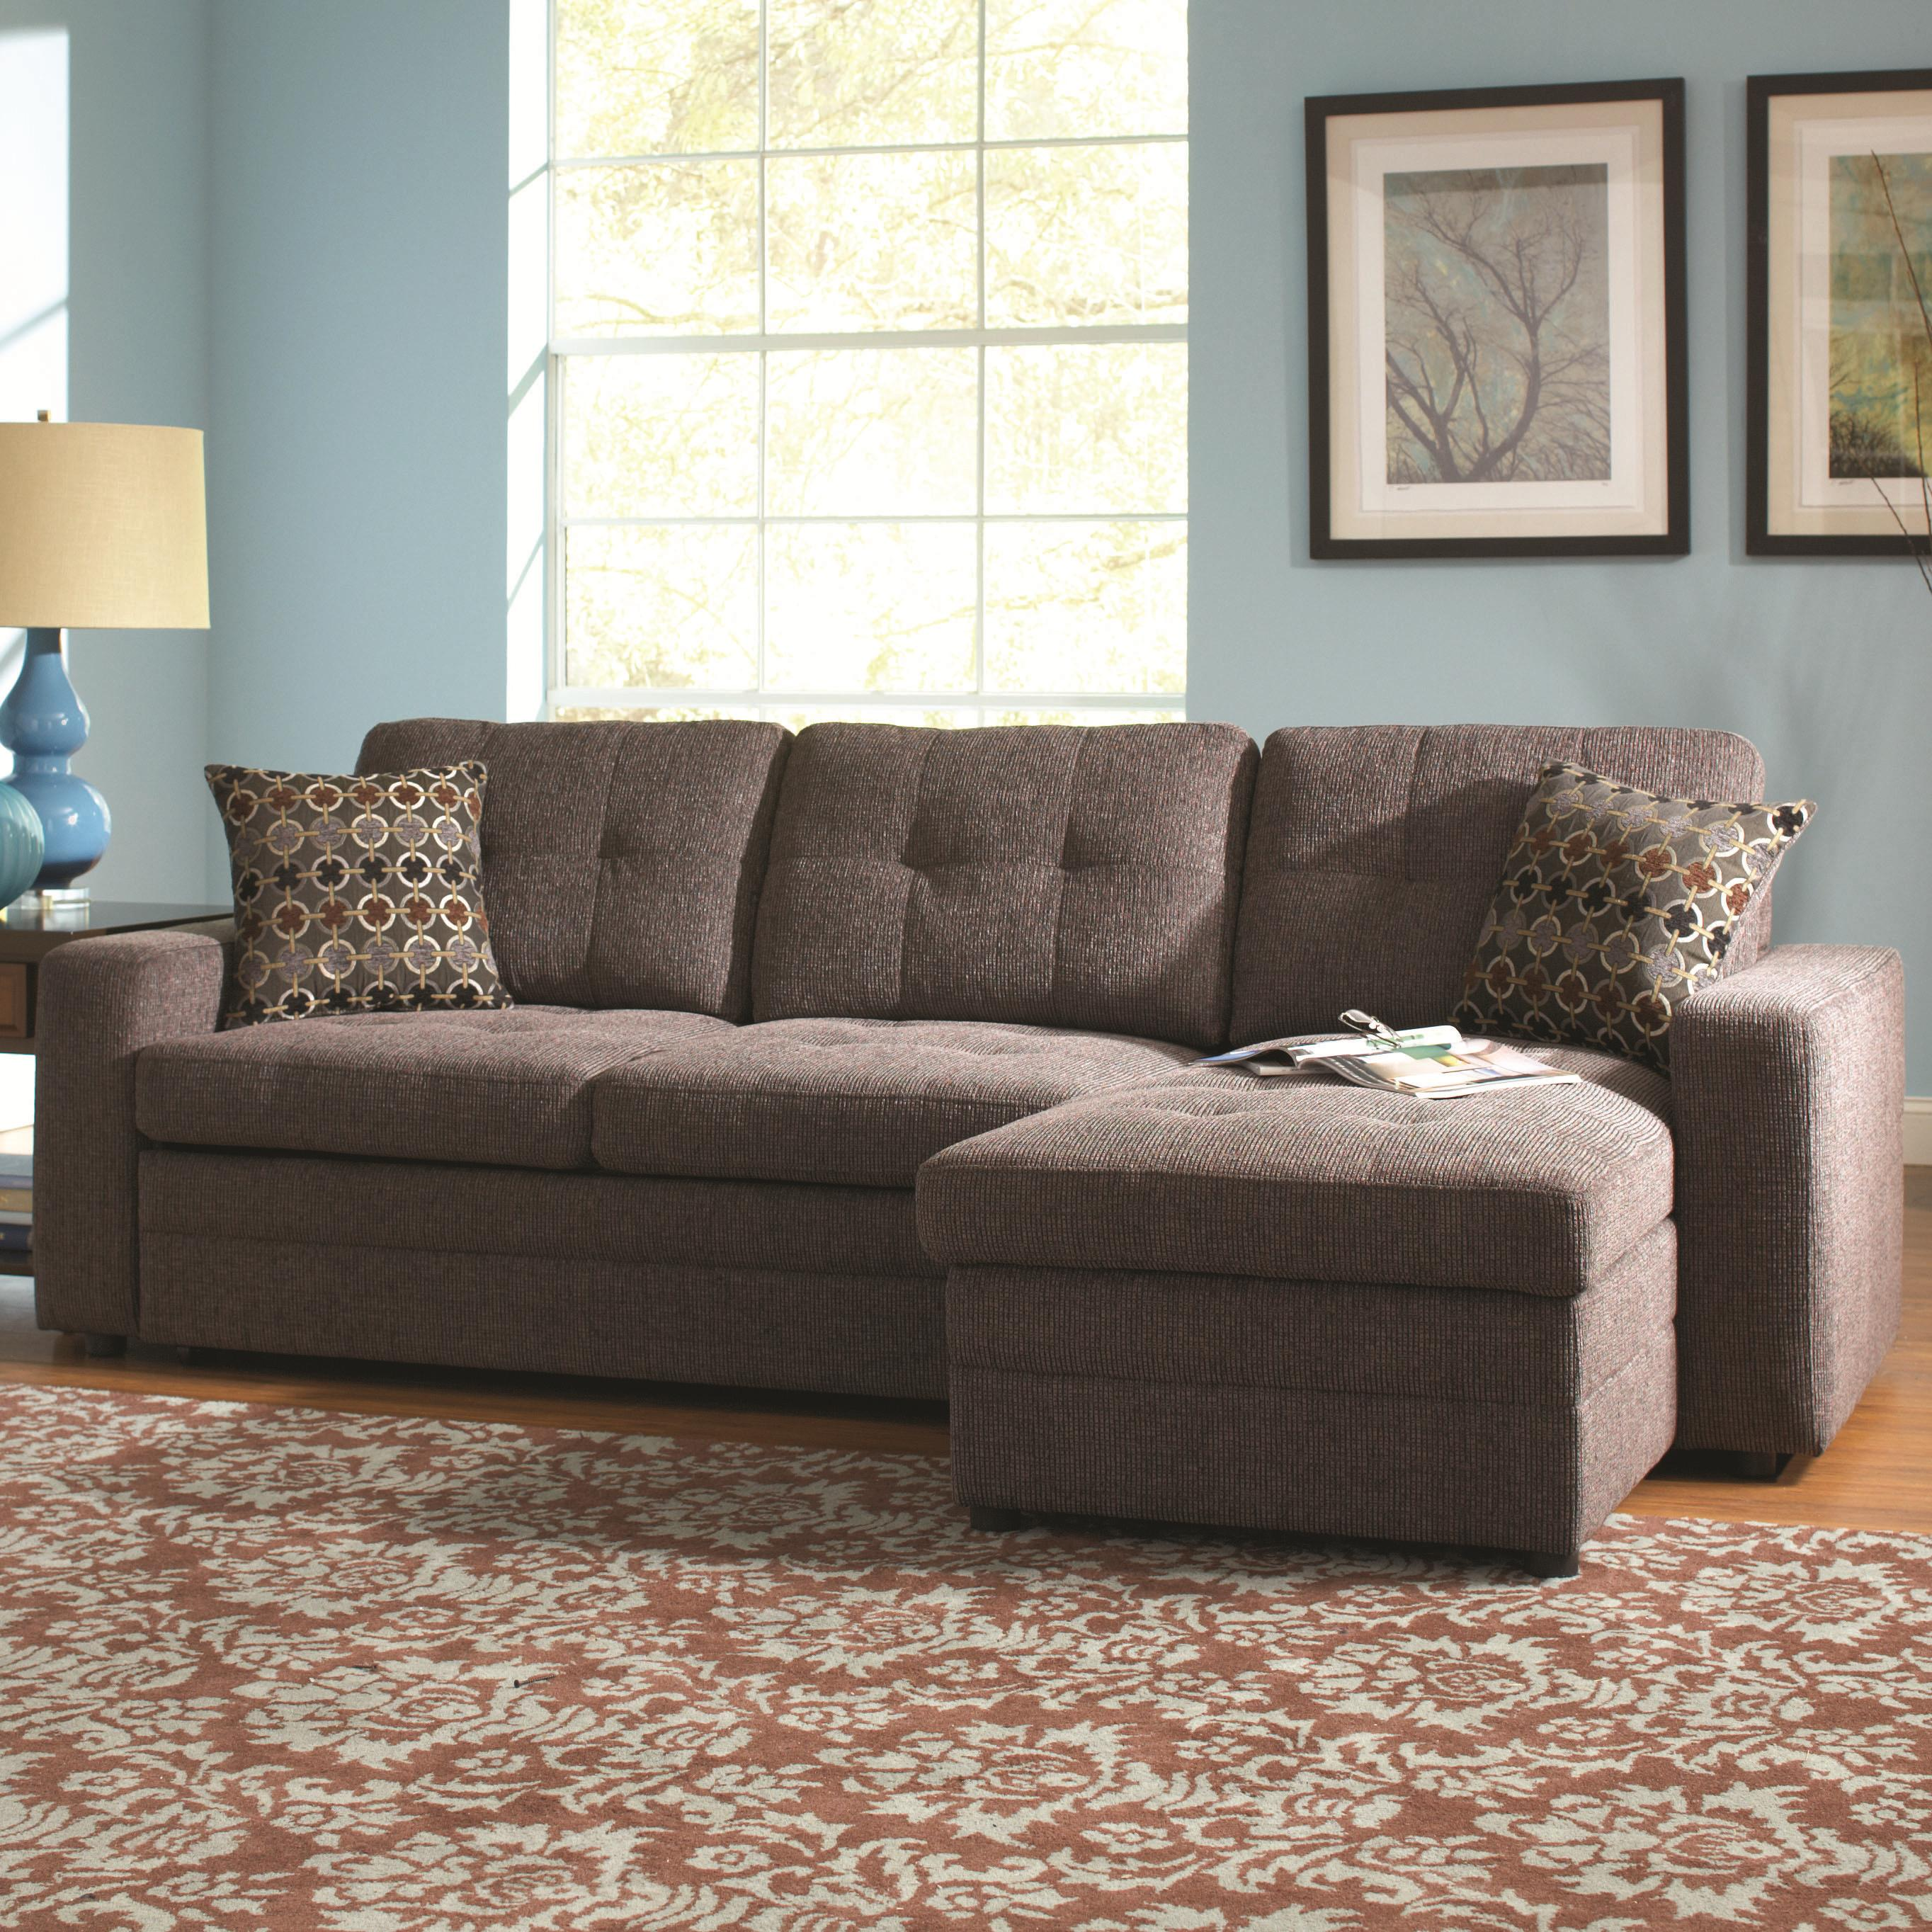 Sectional Pull Out Couch Gus Sectional Sofa With Tufts Storage And Pull Out Bed By Coaster At Value City Furniture